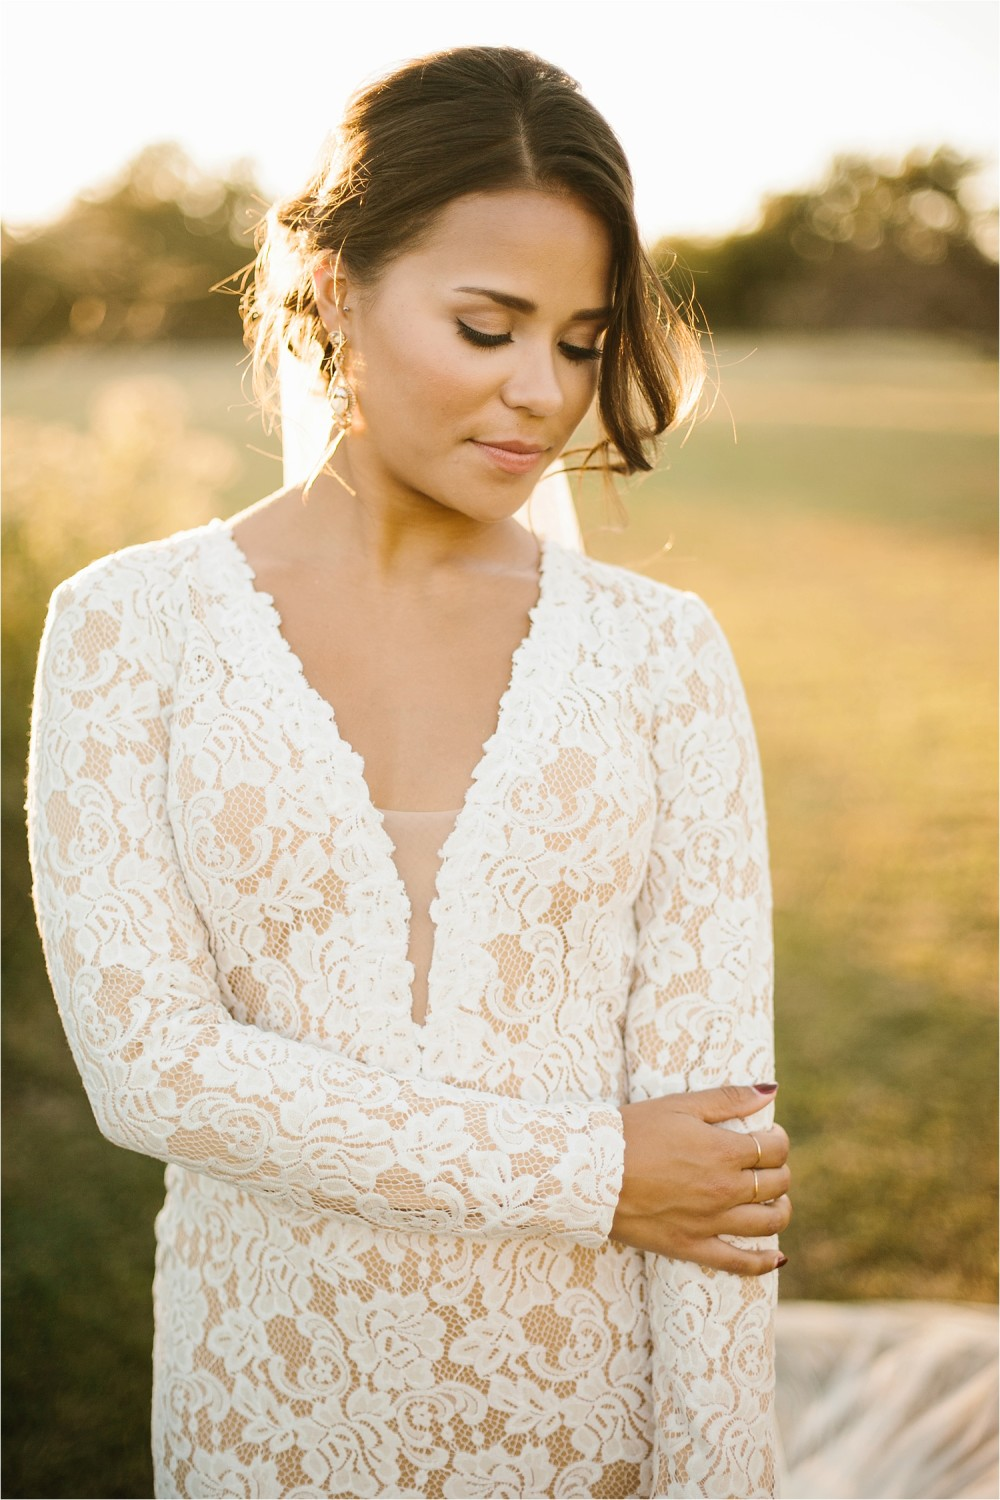 mallory-tyler-__-an-intimate-after-session-at-grapevine-lake-by-north-texas-wedding-photographer-rachel-meagan-photography-_-26